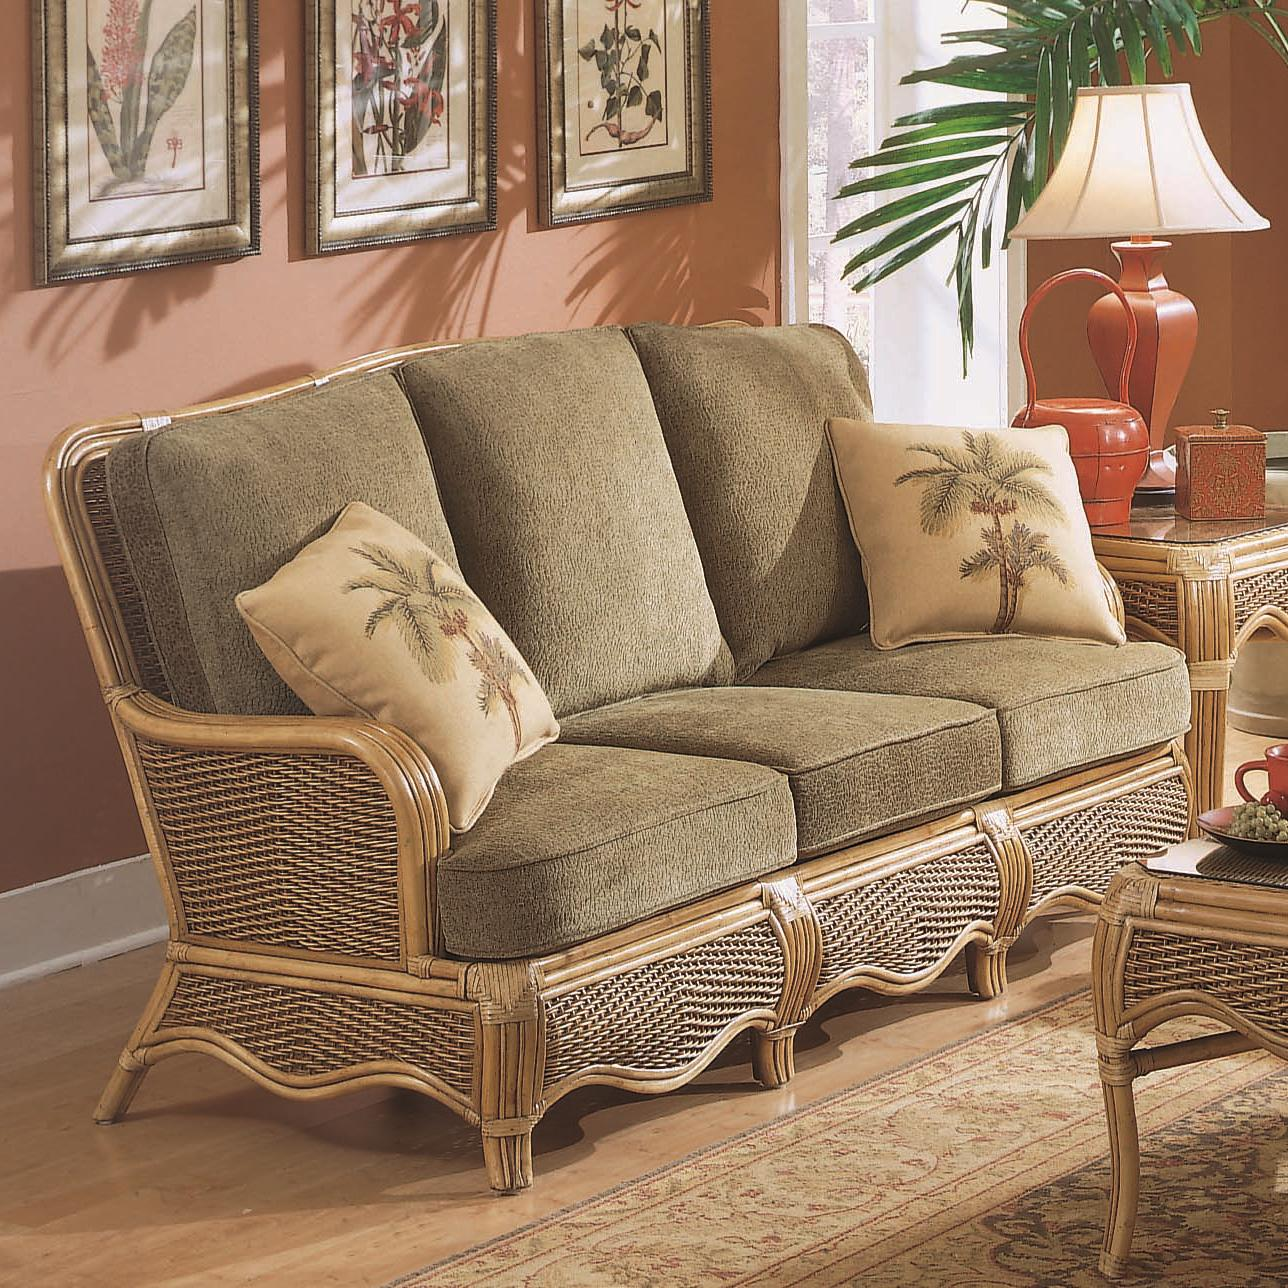 Shorewood 3-Seater Stationary Sofa by Braxton Culler at Alison Craig Home Furnishings